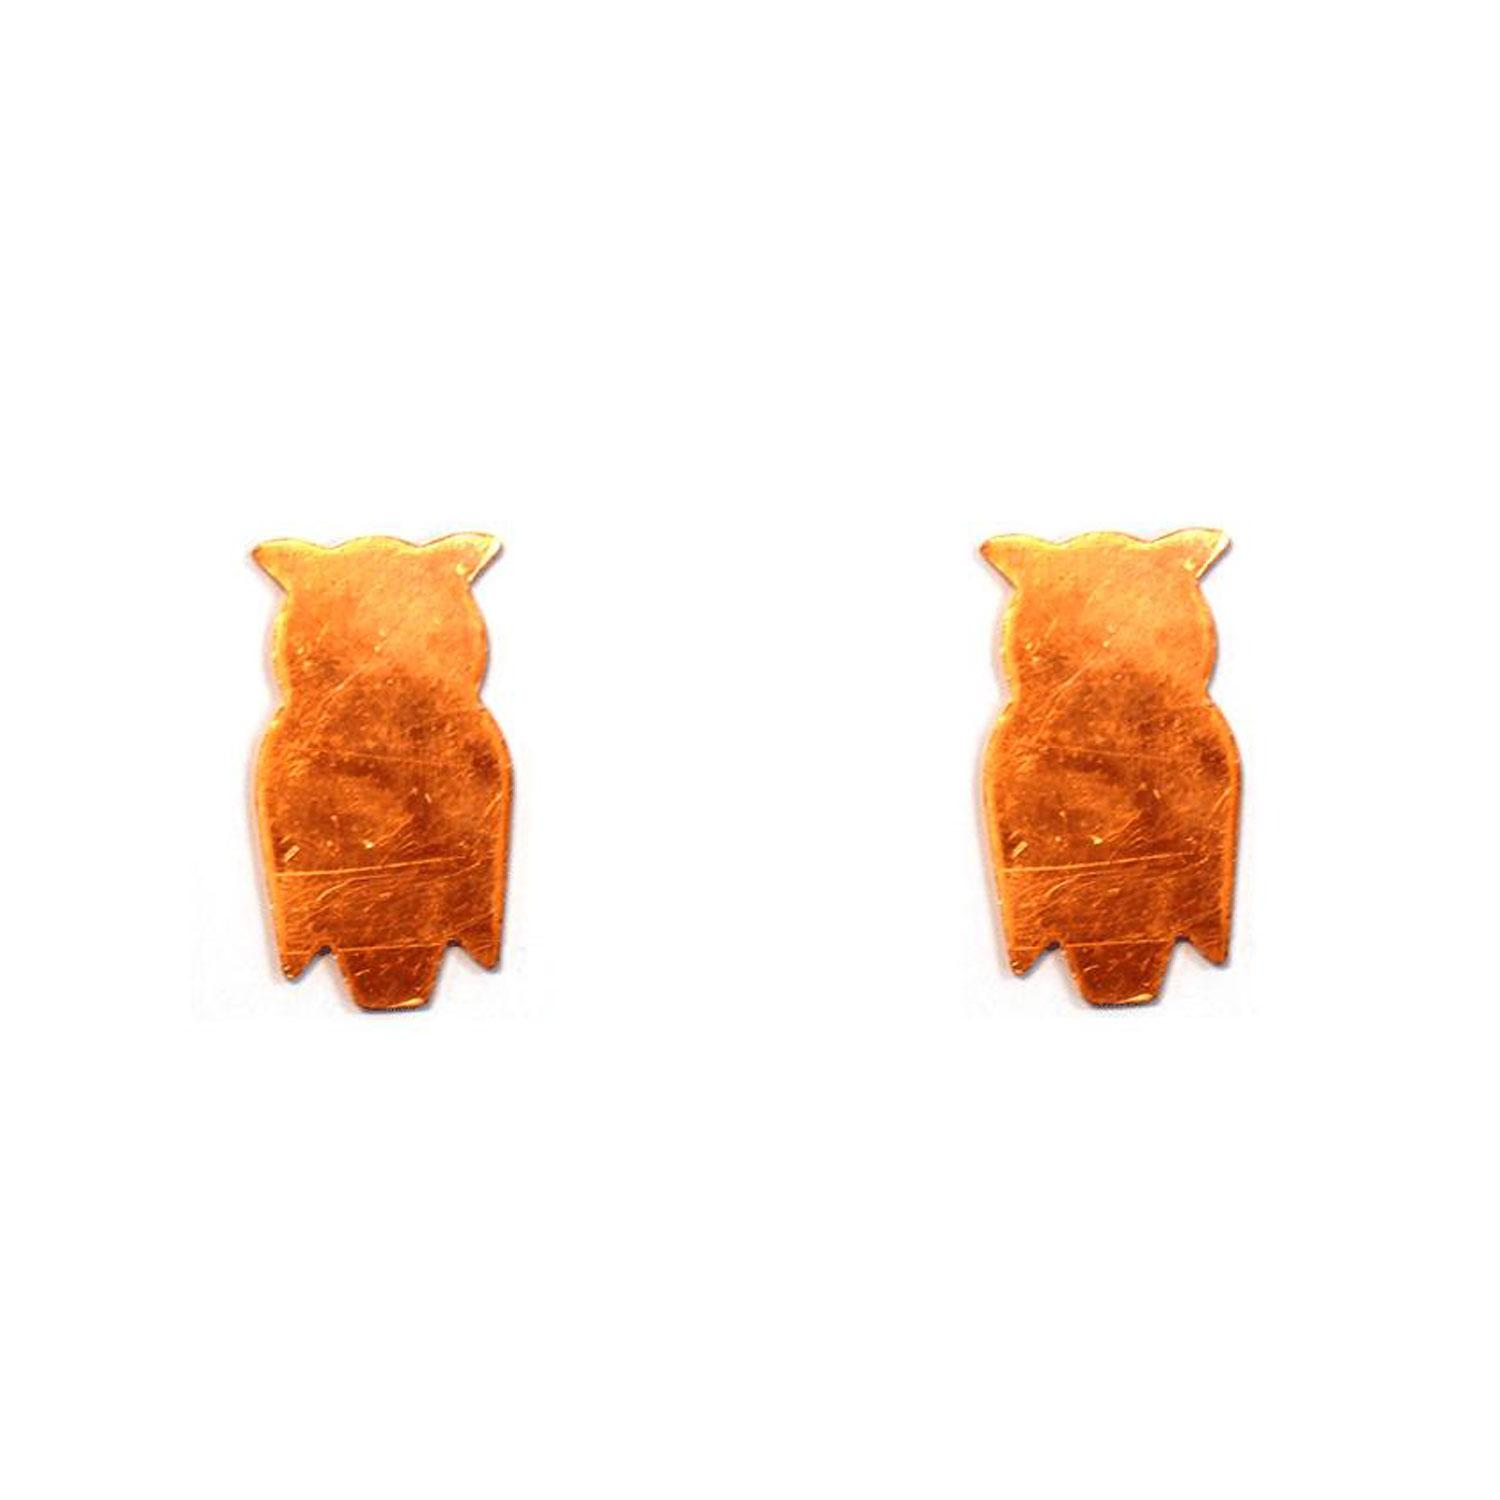 Owl Copper Shape - 2 Pack